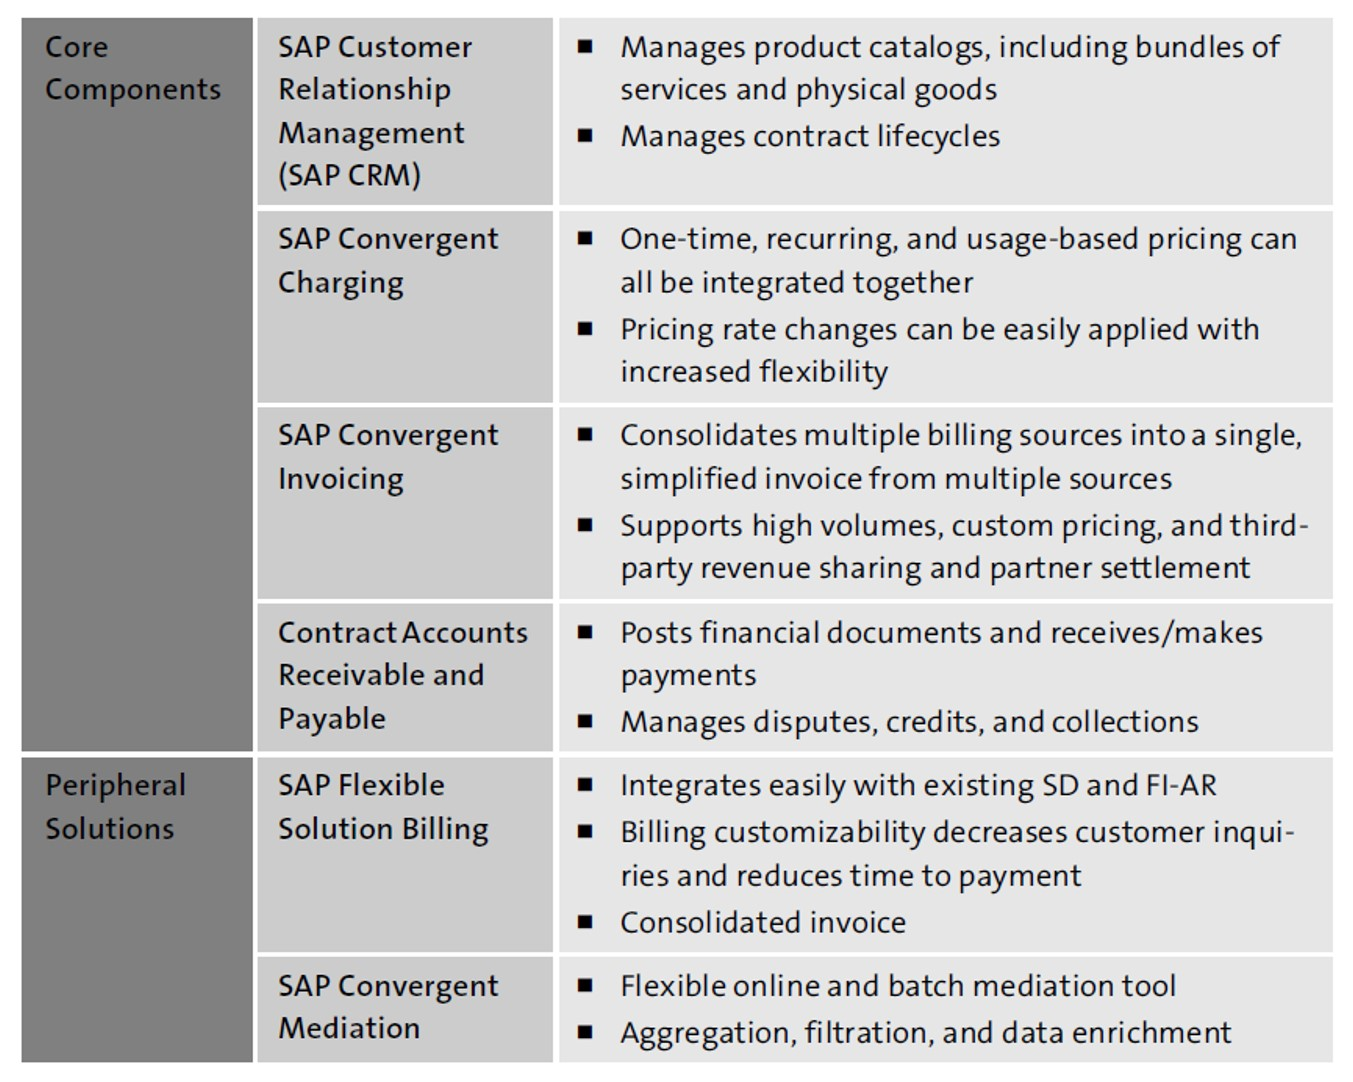 SAP BRIM Components